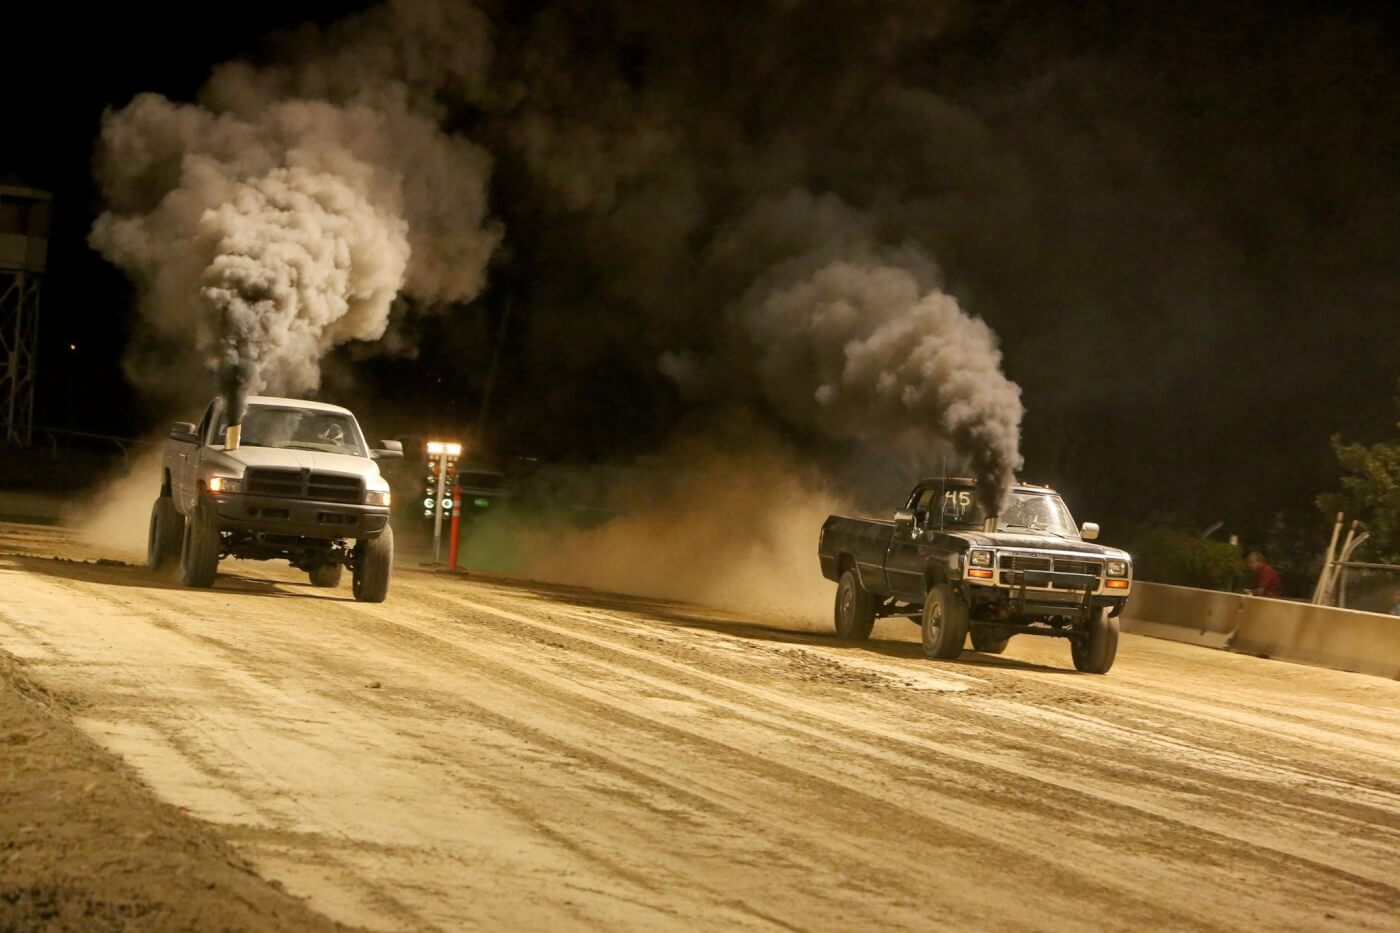 The dirt drags ran late into the night and made for a great show for the crowd. These two big Cummins trucks may not be completely street legal thanks to those awesome hood stacks, but that won't keep them from having some fun off-road.